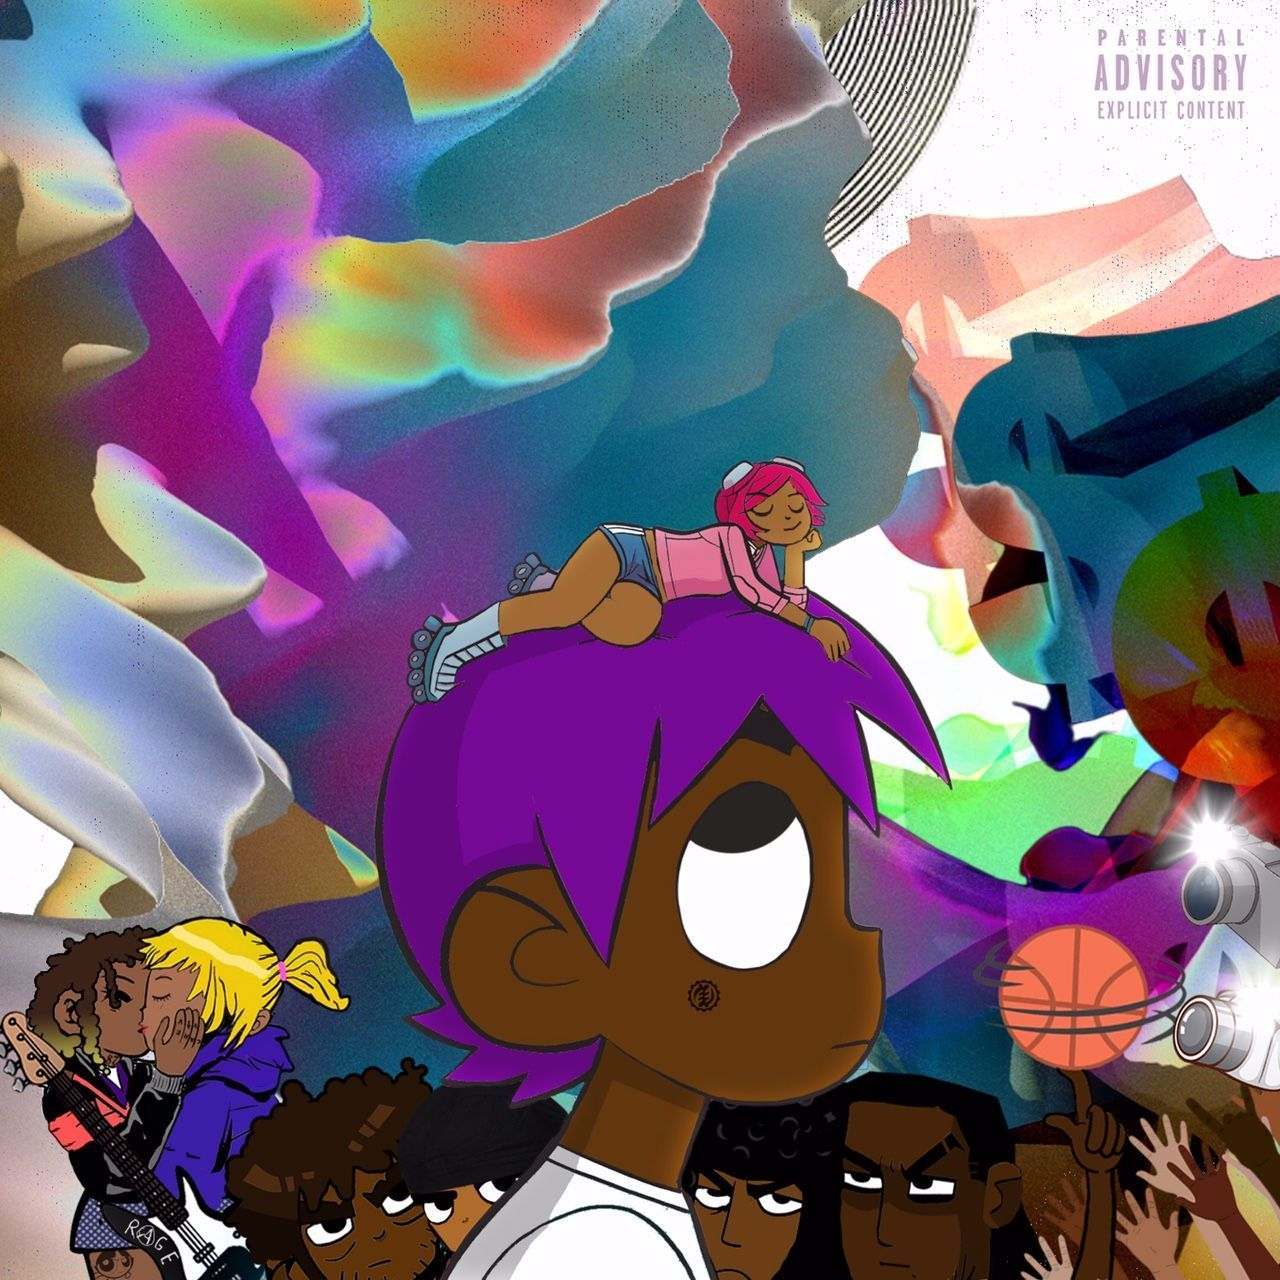 Lil Uzi Cover Art Wallpapers On Wallpaperdog Posted in hype 13 days ago, bumped 6 days ago. lil uzi cover art wallpapers on